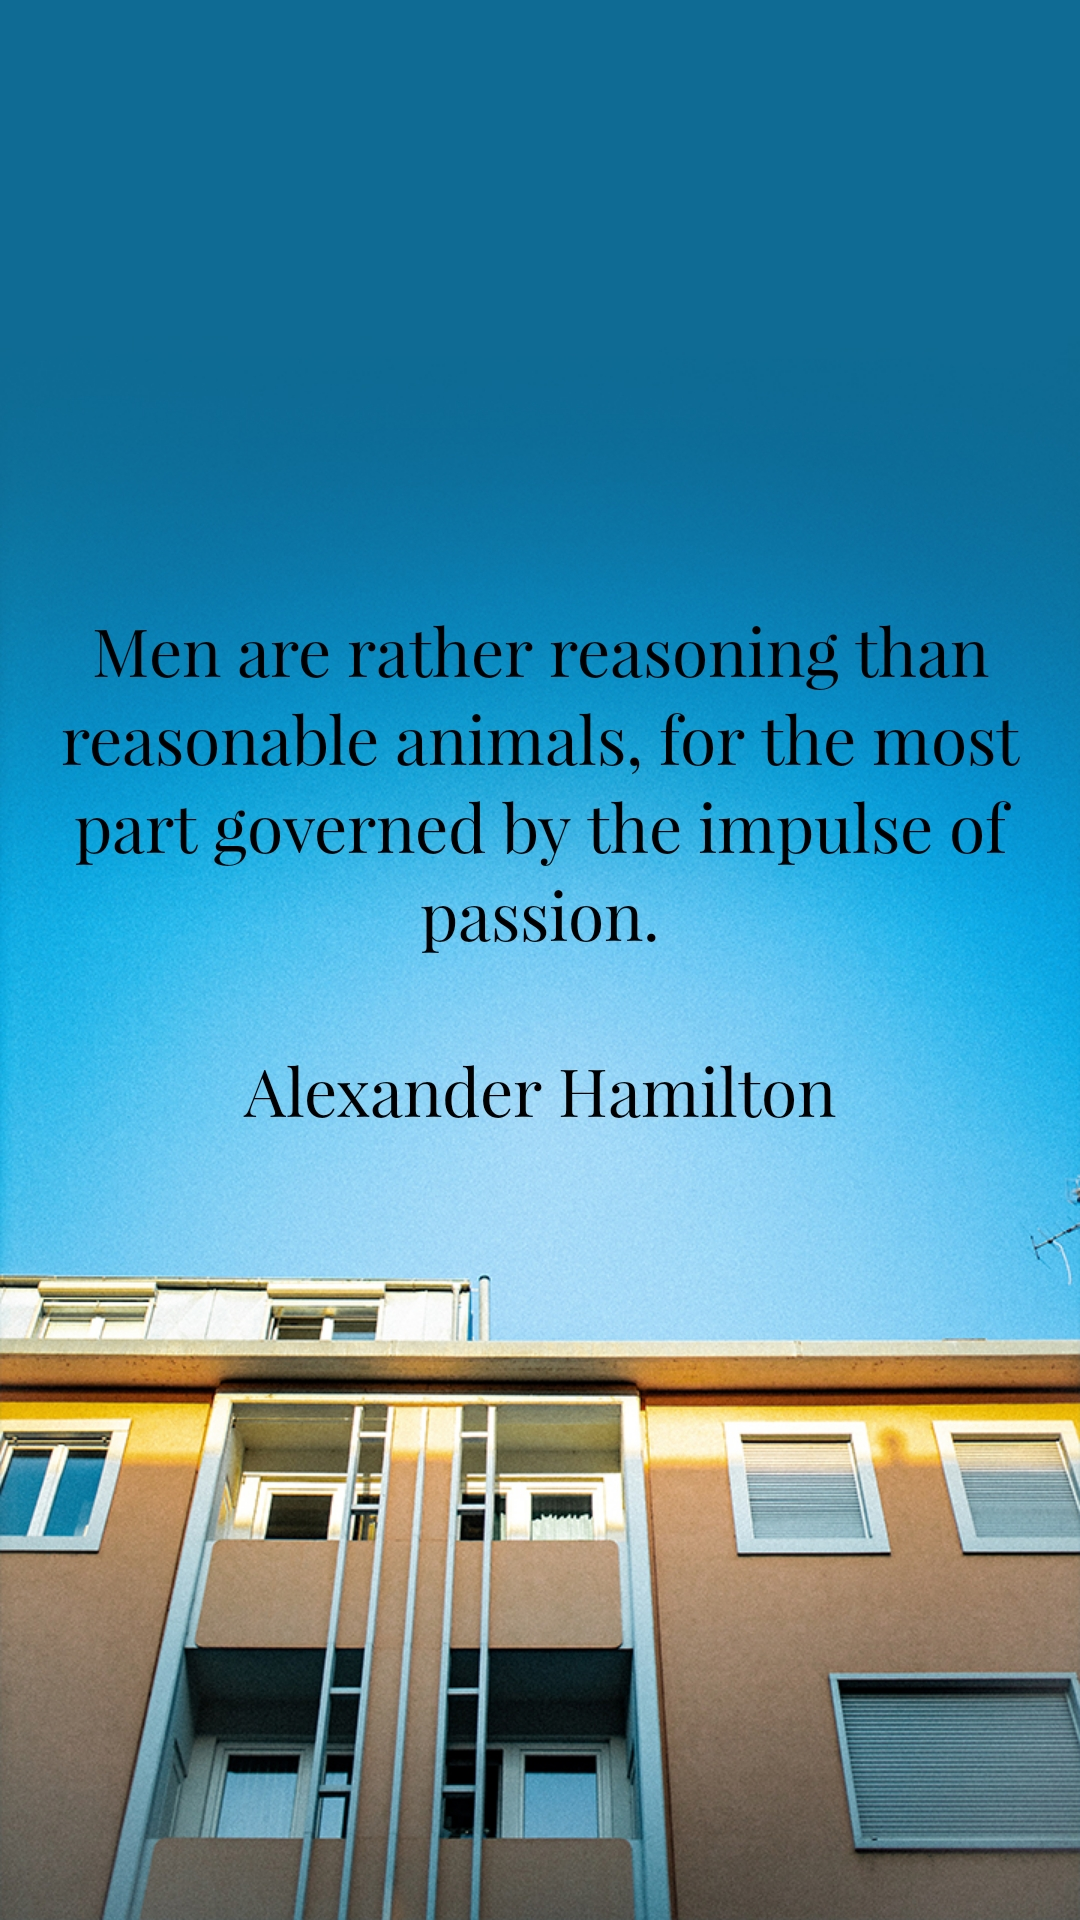 Men are rather reasoning than reasonable animals, for the most part governed by the impulse of passion.  Alexander Hamilton